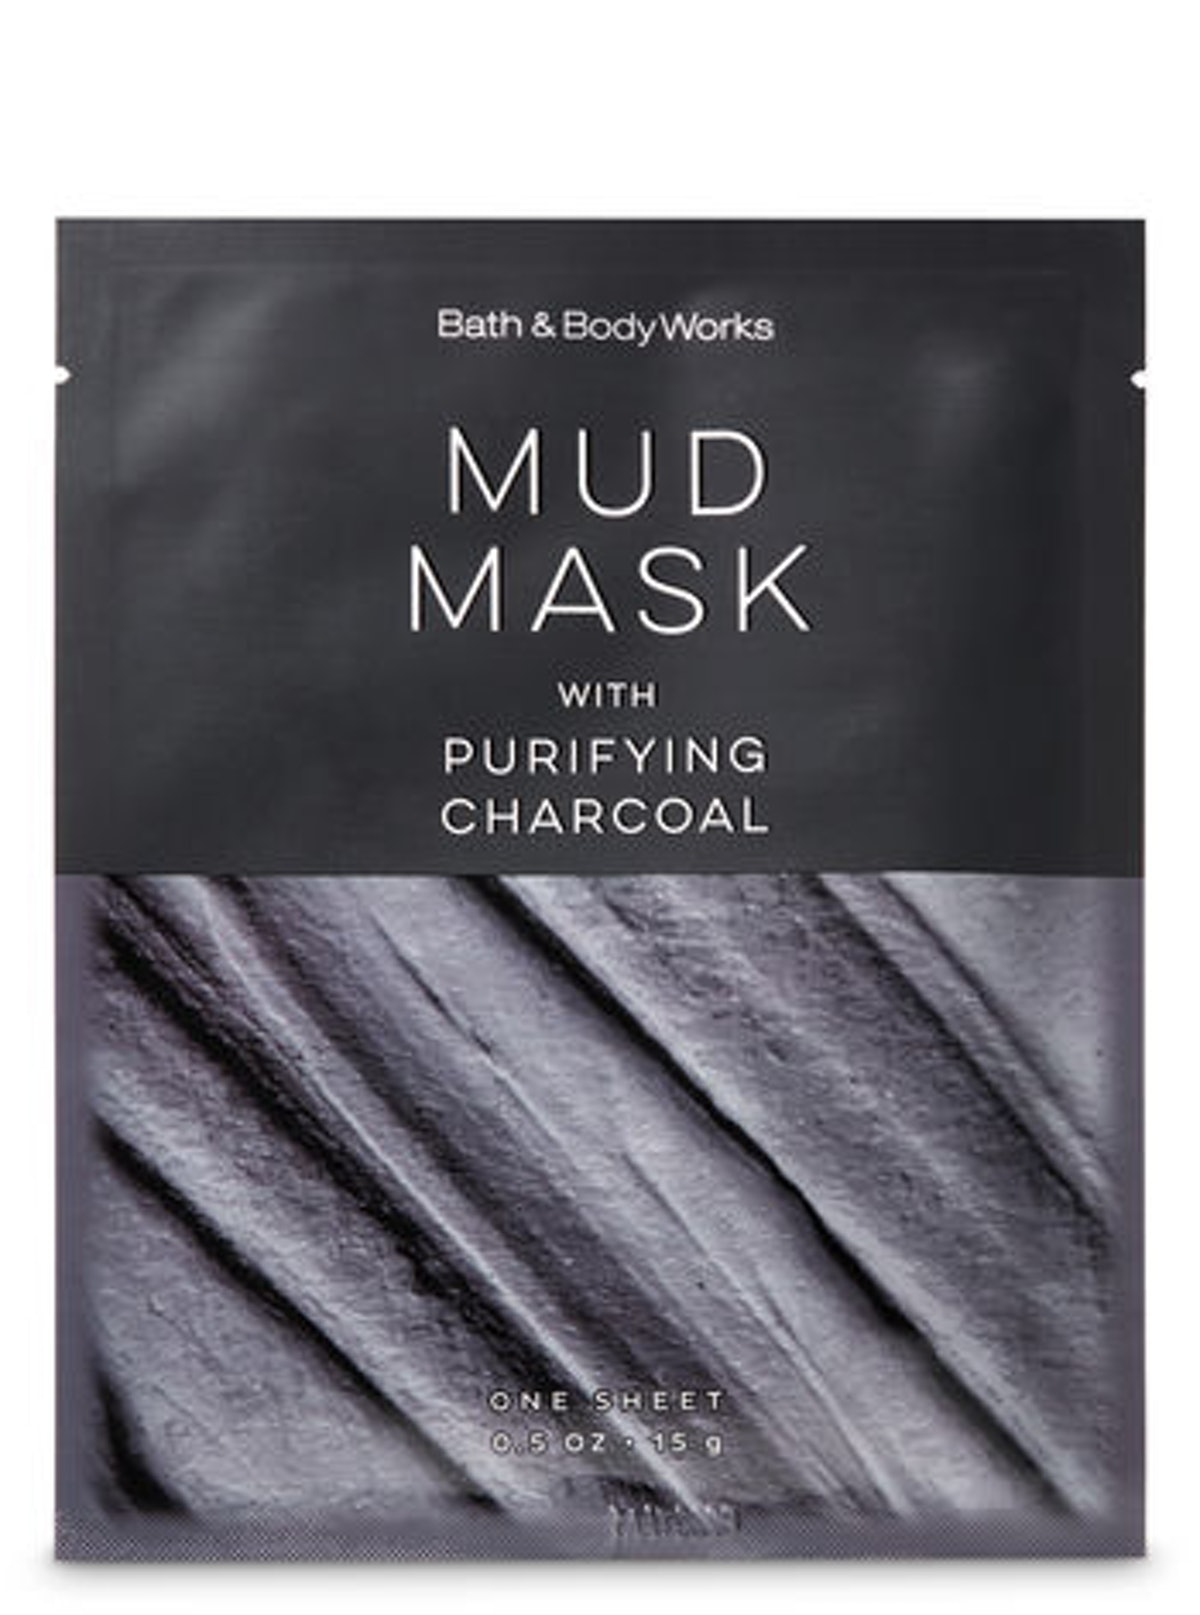 Mud Mask With Purifying Charcoal